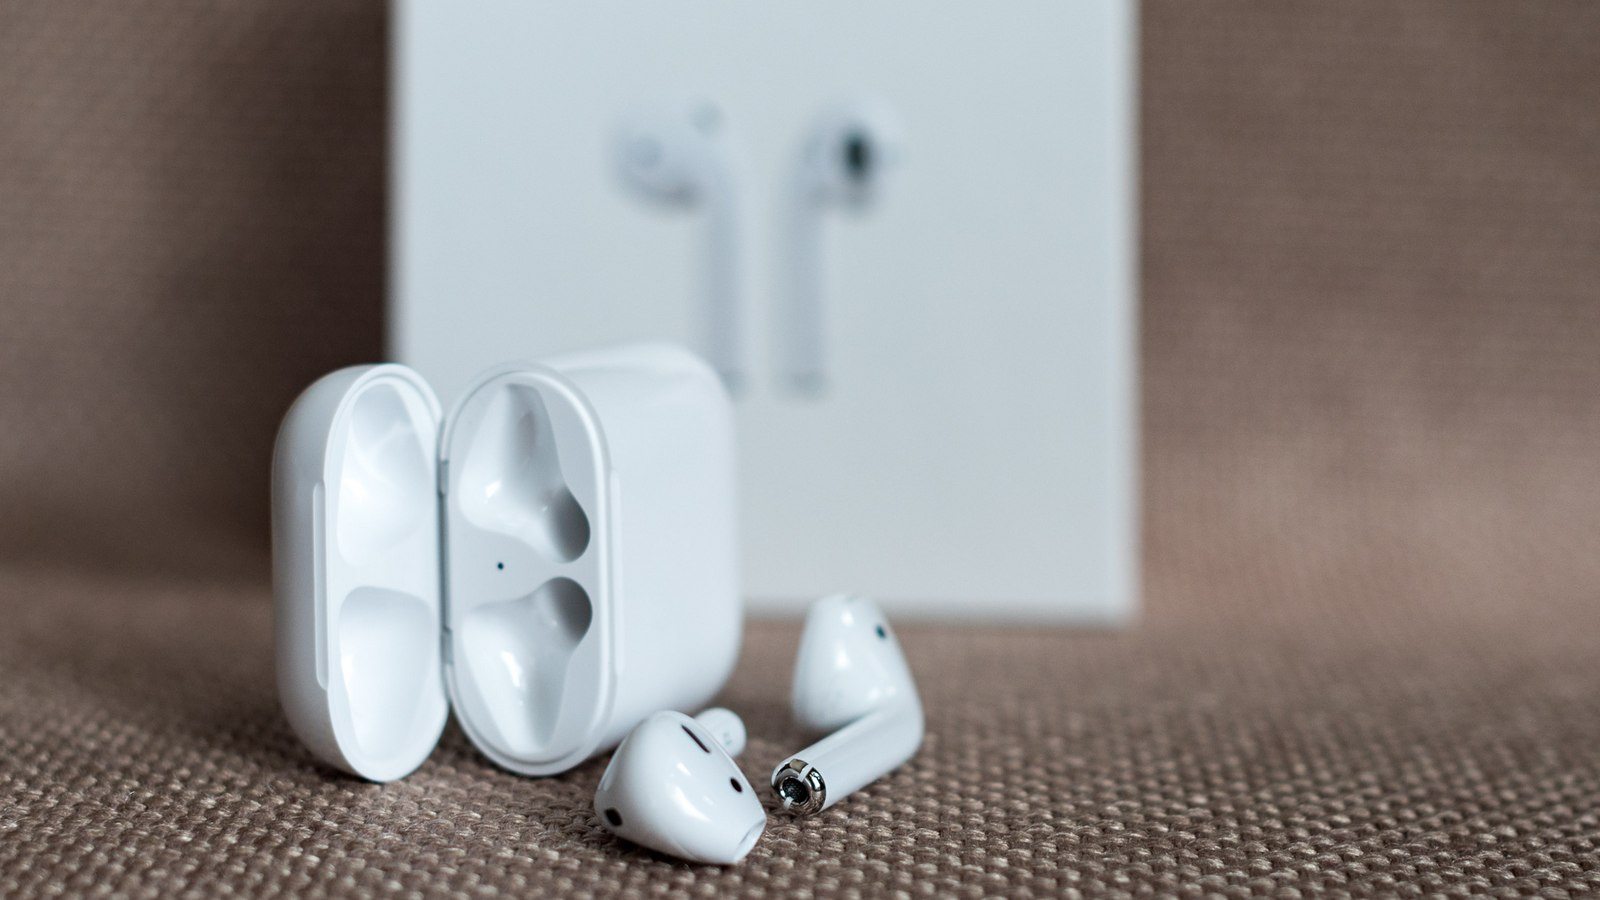 How Apple can improve the AirPods?